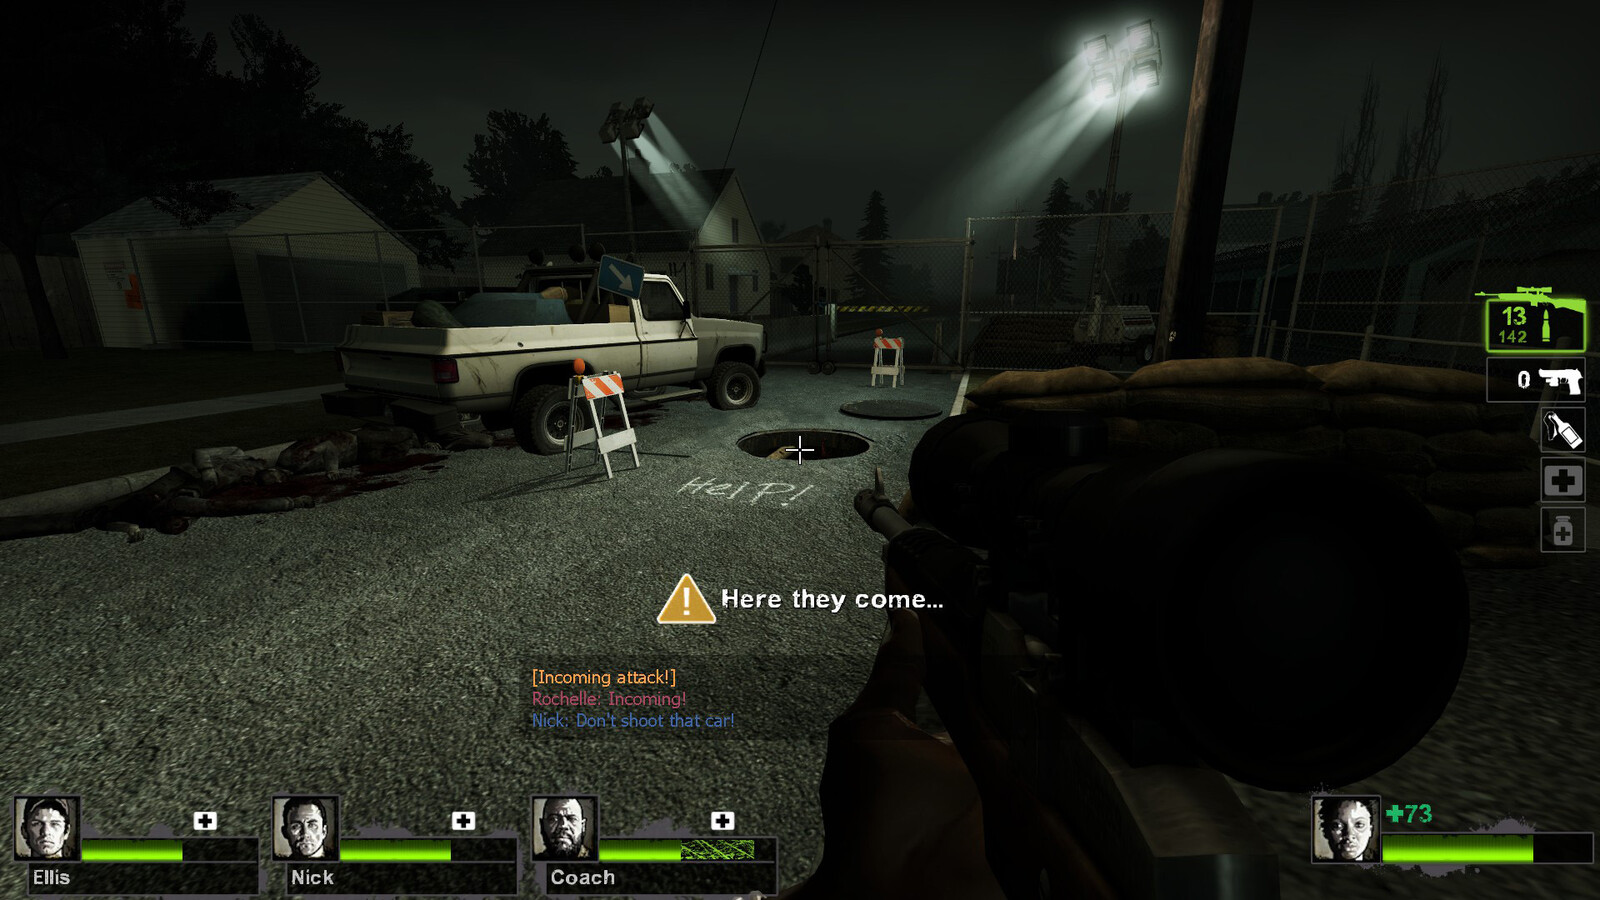 Players are finally directed down with lighting, arrow signs and spray paint to move underground to escape.